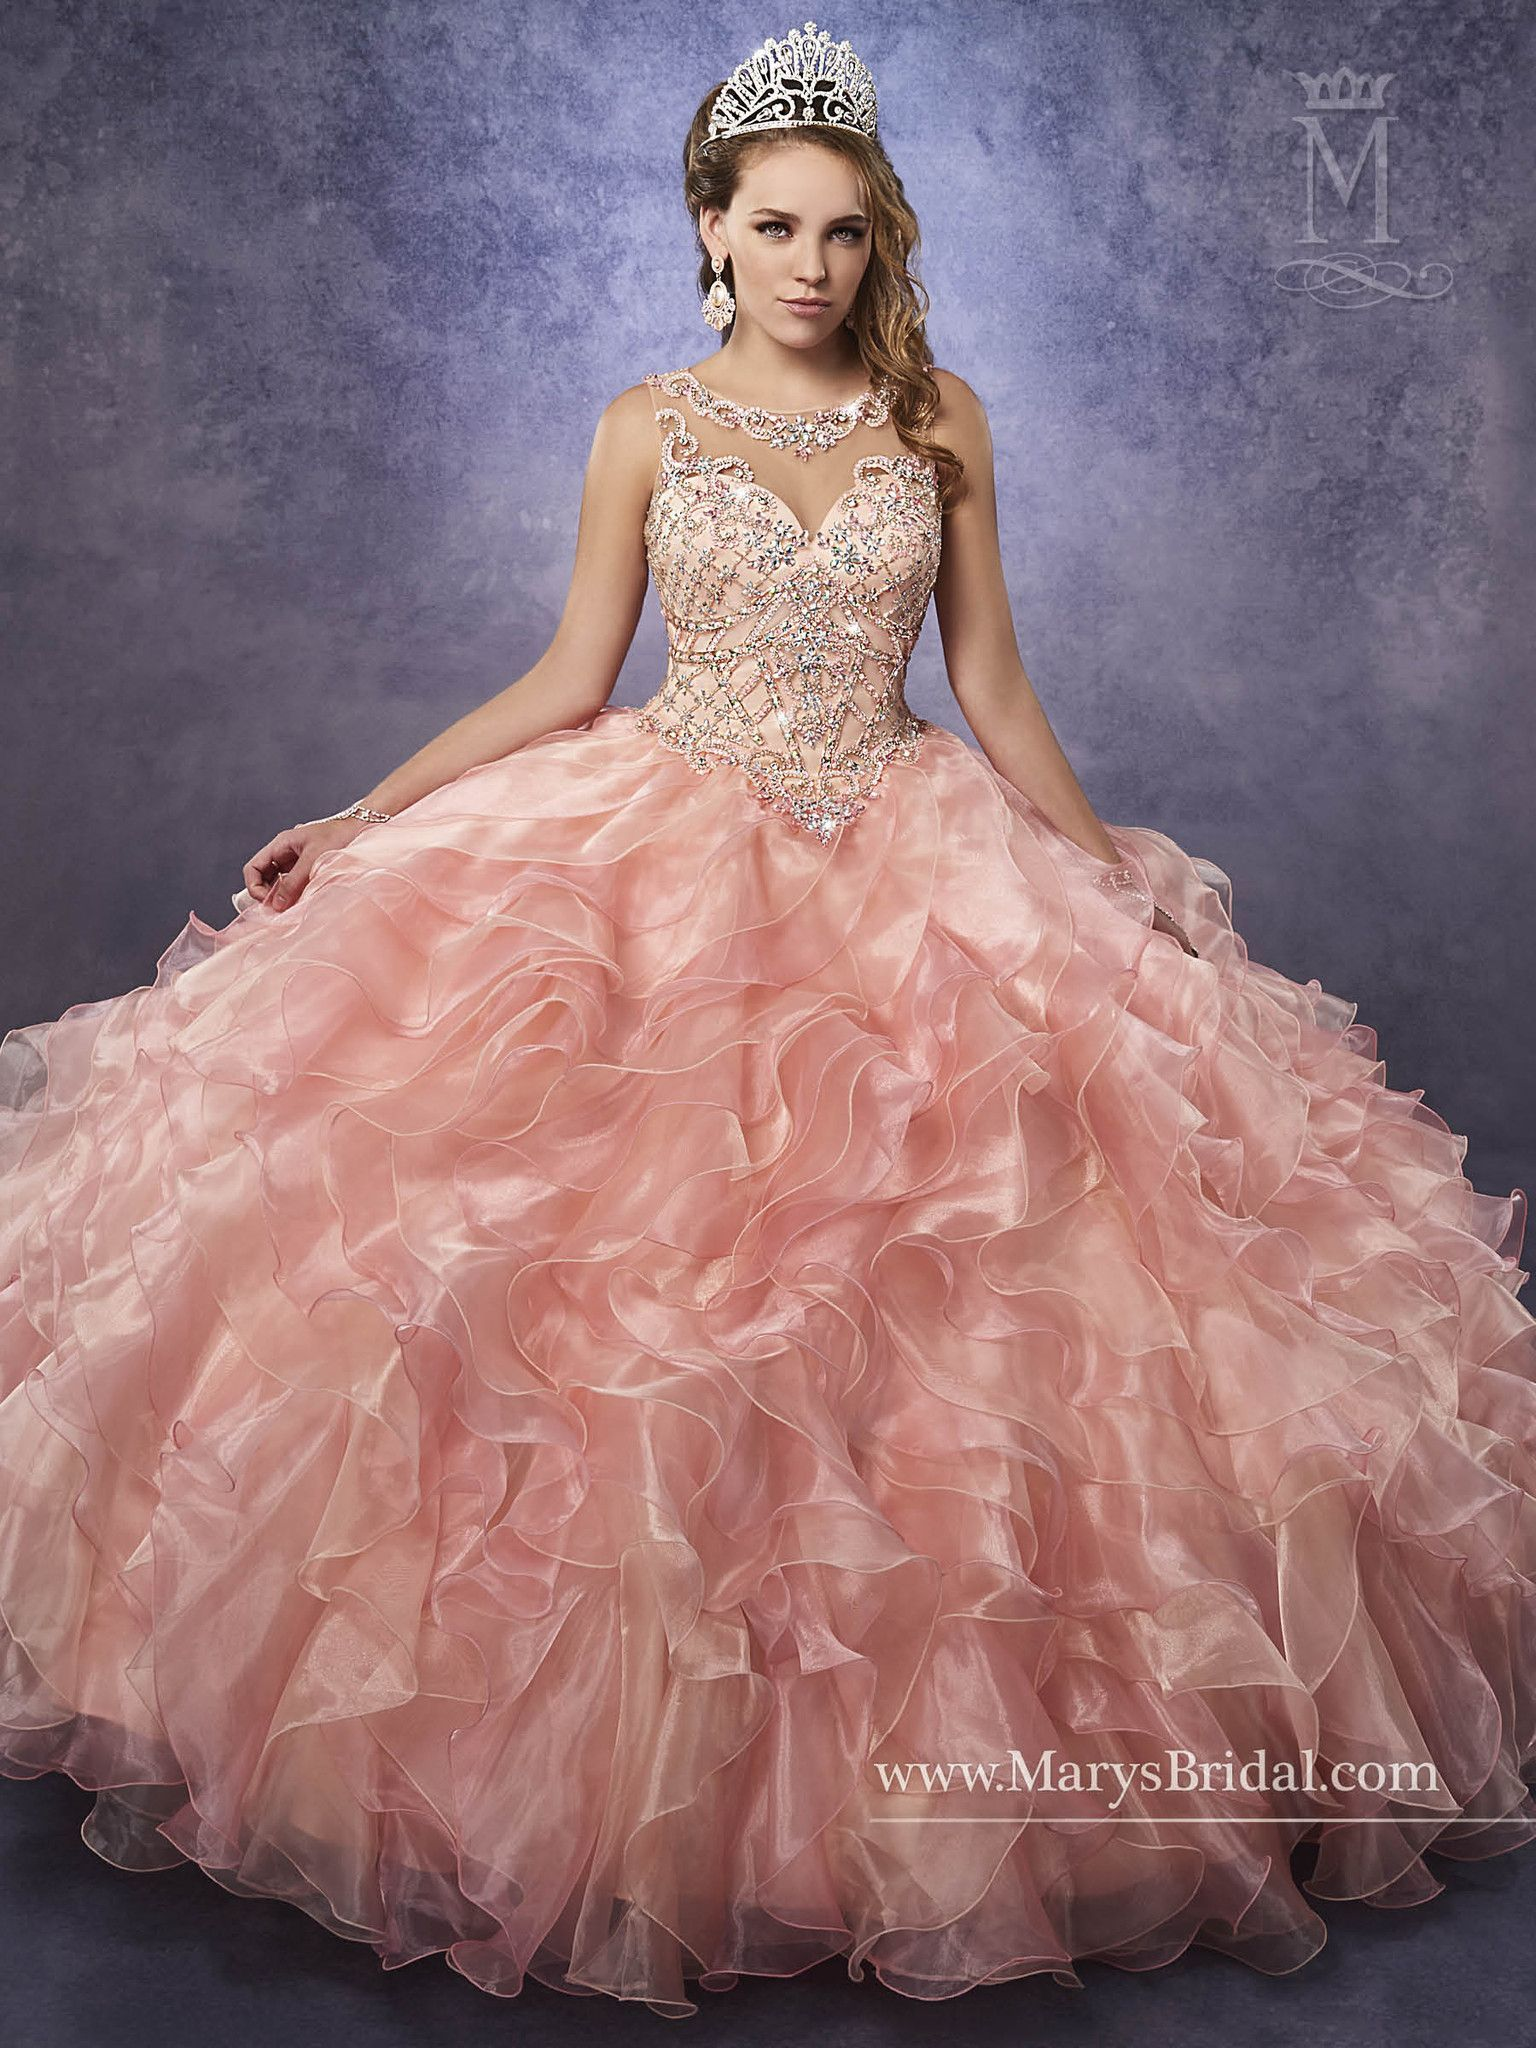 Mary\'s Bridal Princess Collection Quinceanera Dress Style 4Q483 | 15 ...